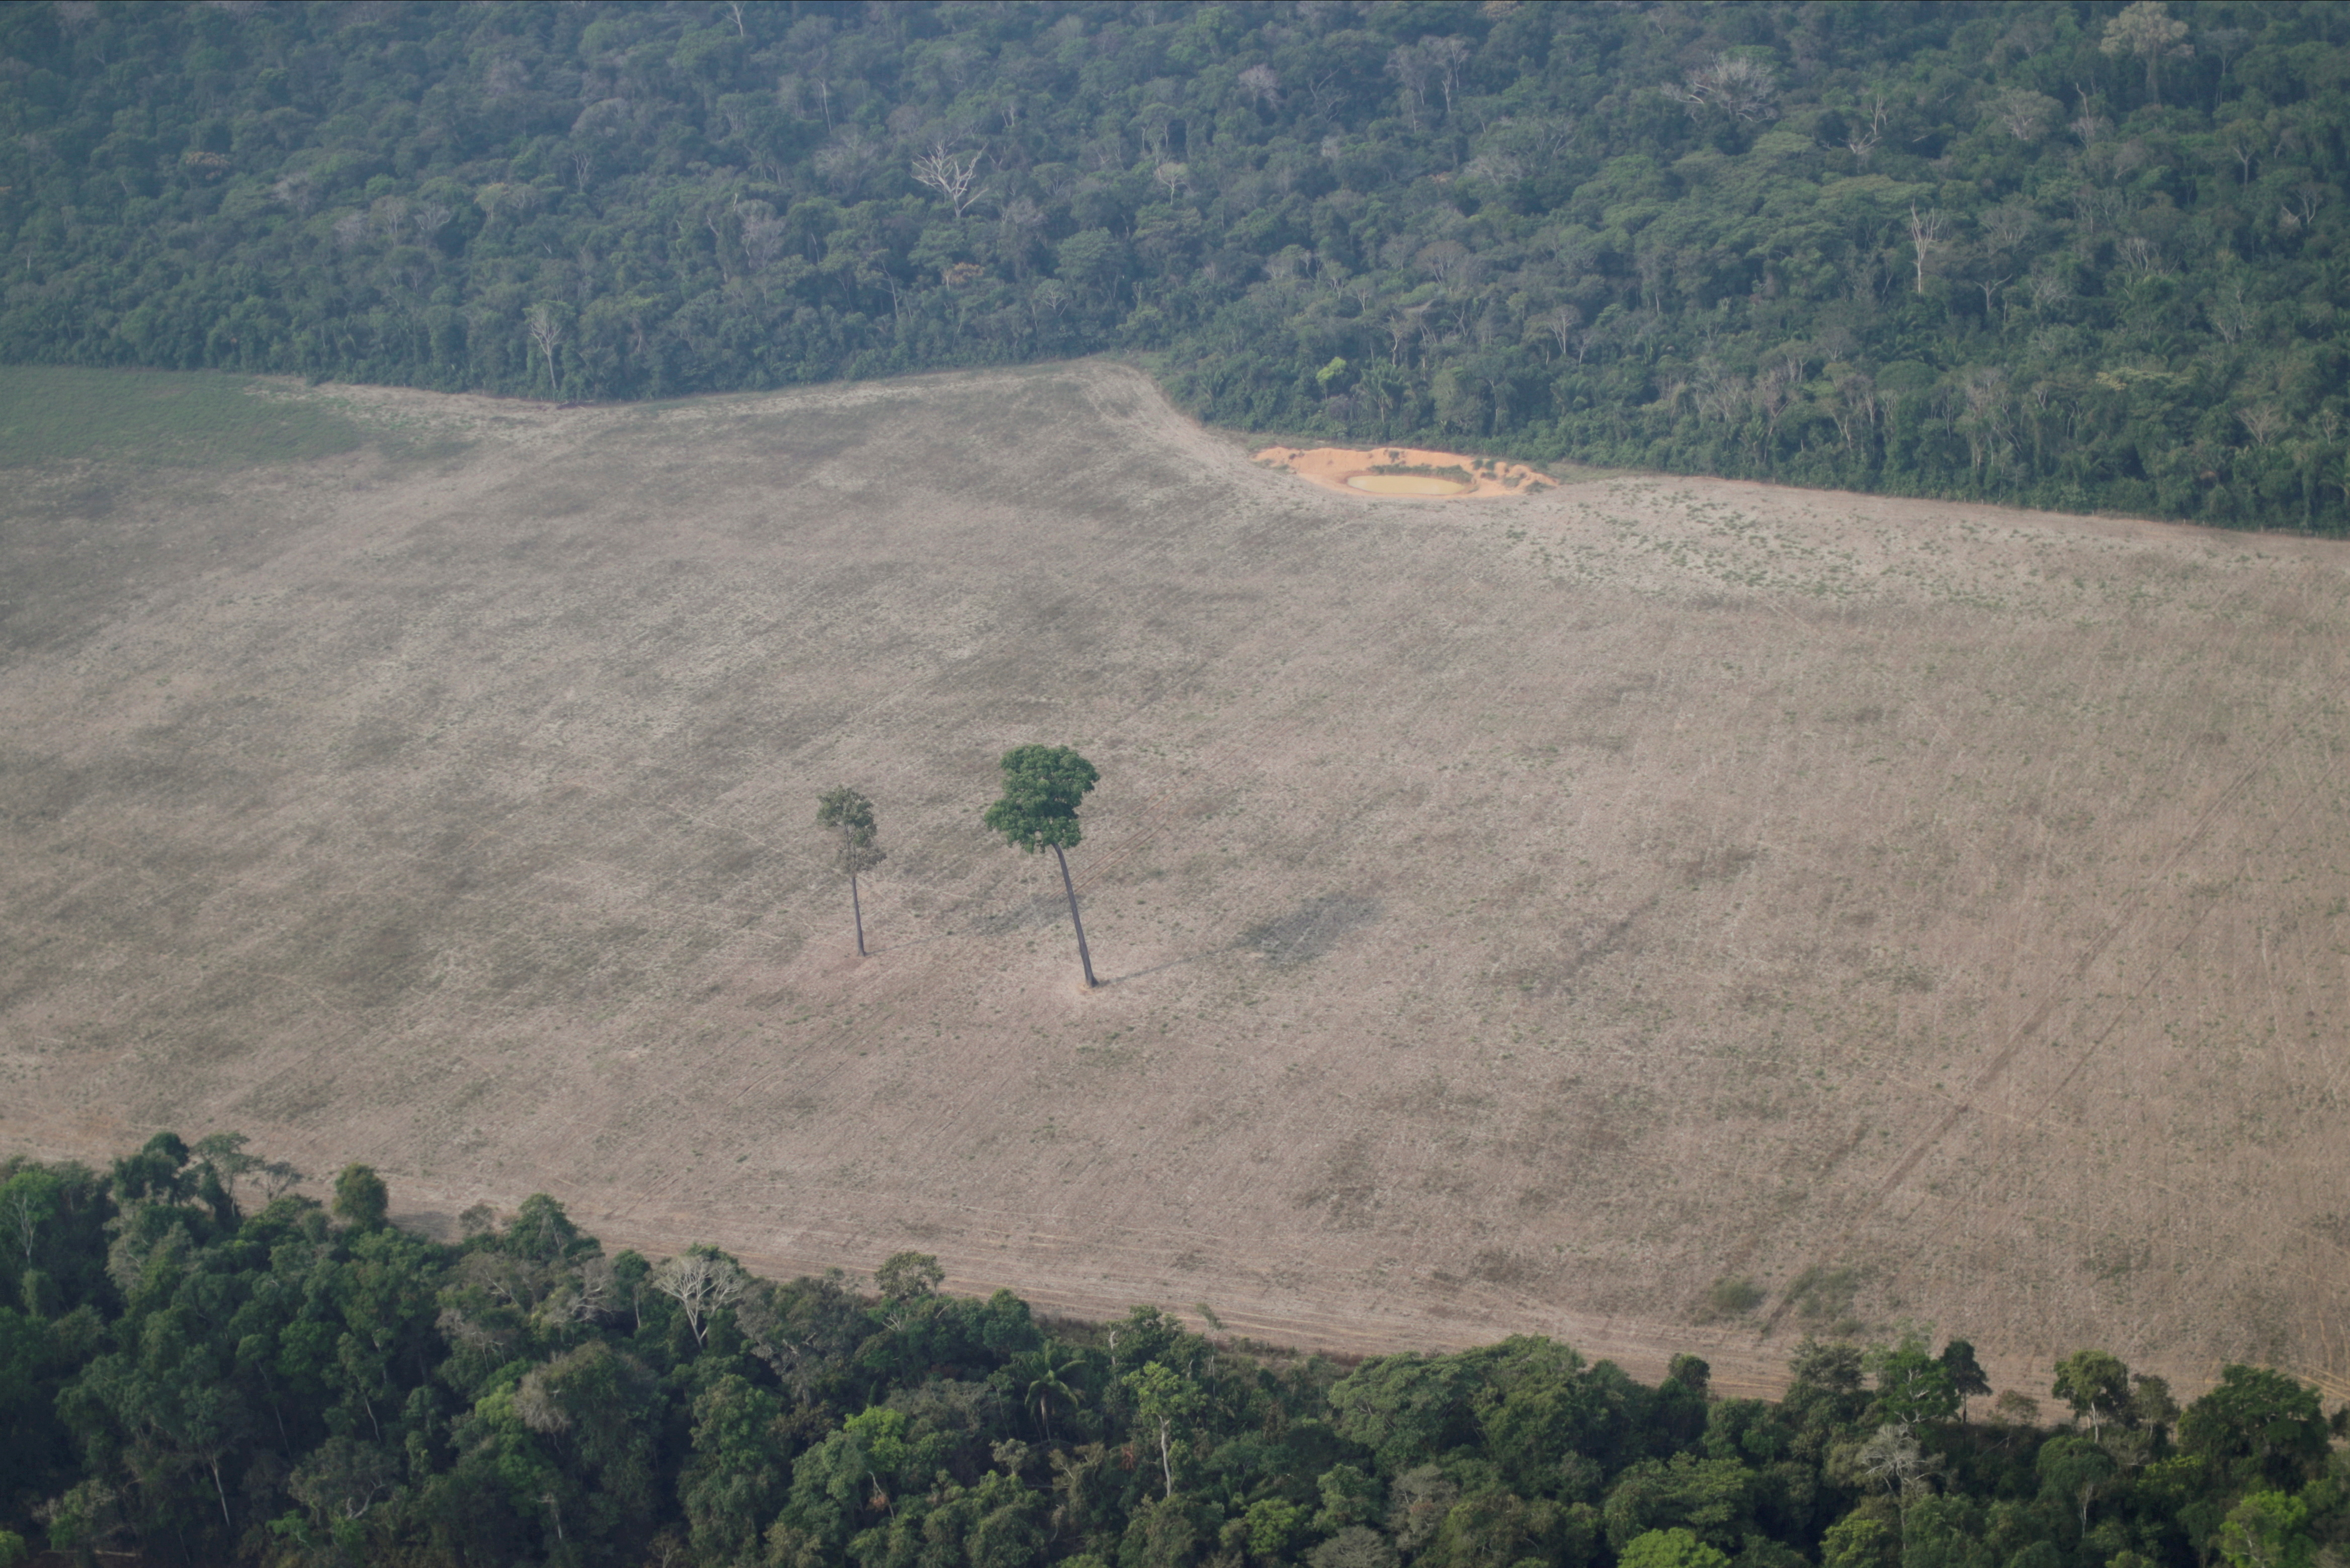 An aerial view shows a tree at the center of a deforested plot of the Amazon near Porto Velho, Rondonia State, Brazil August 14, 2020. REUTERS/Ueslei Marcelino